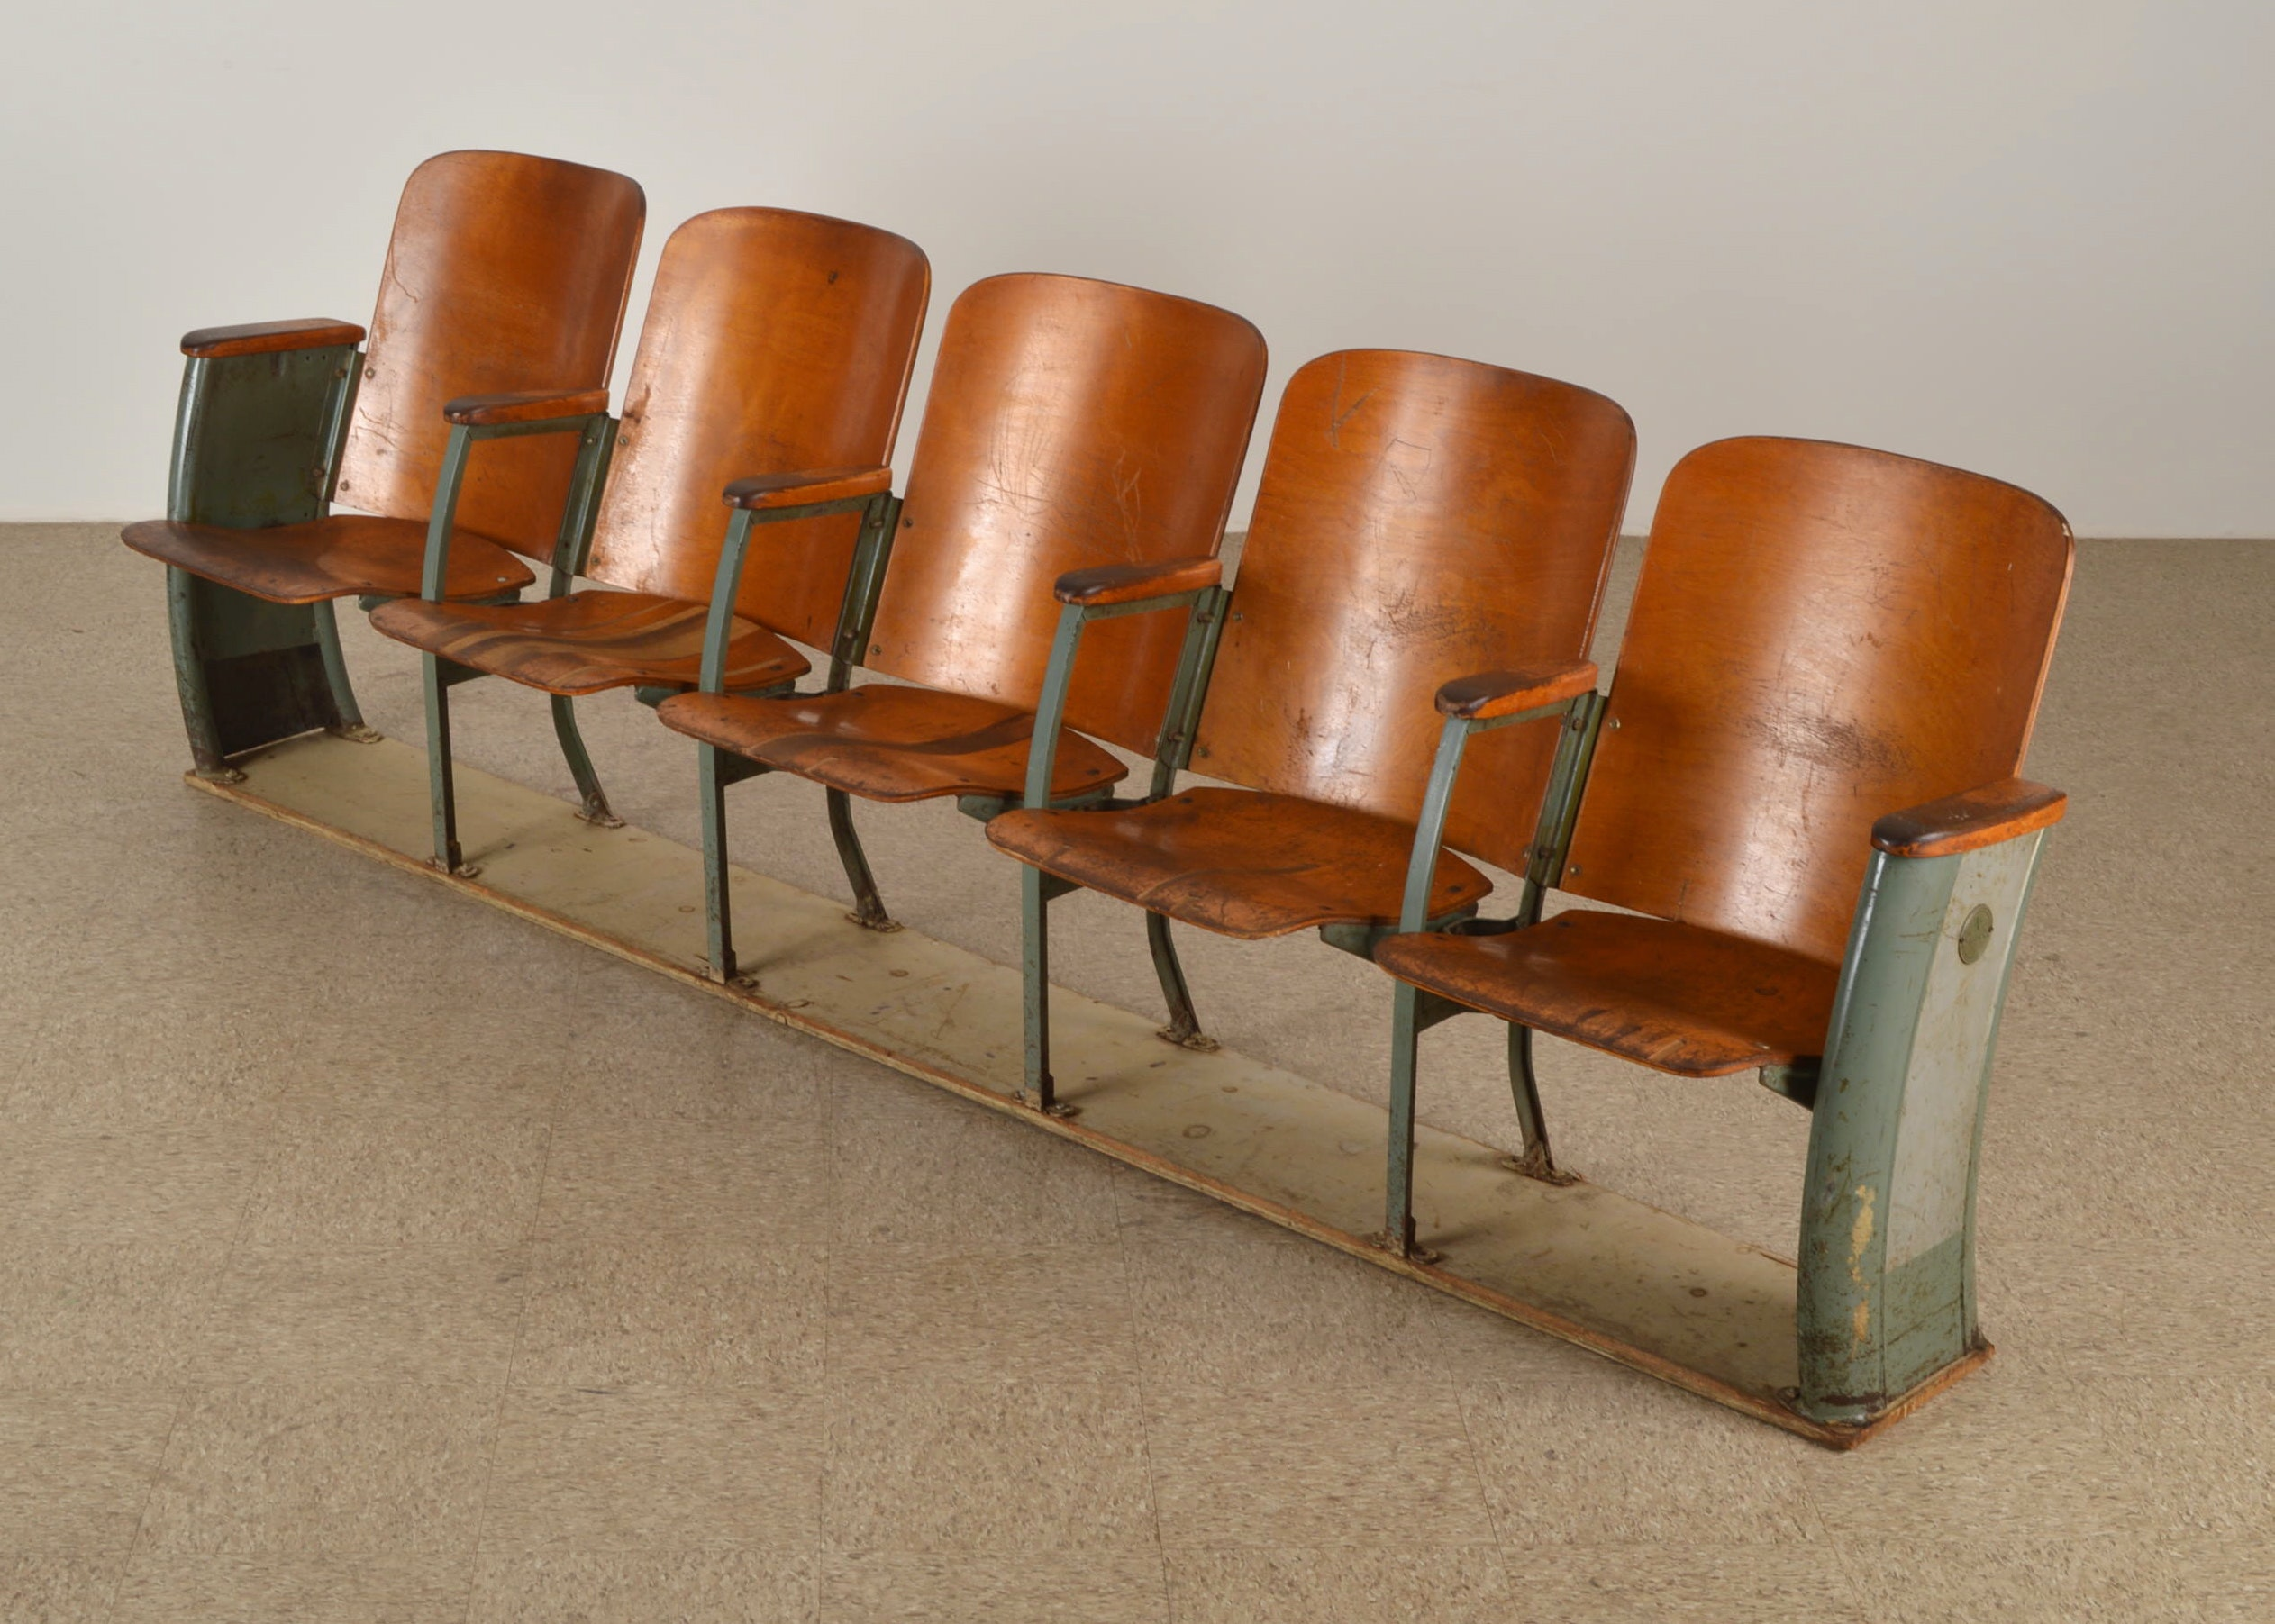 Retro Brunswick Balke Bowling Alley Connected Chairs ...